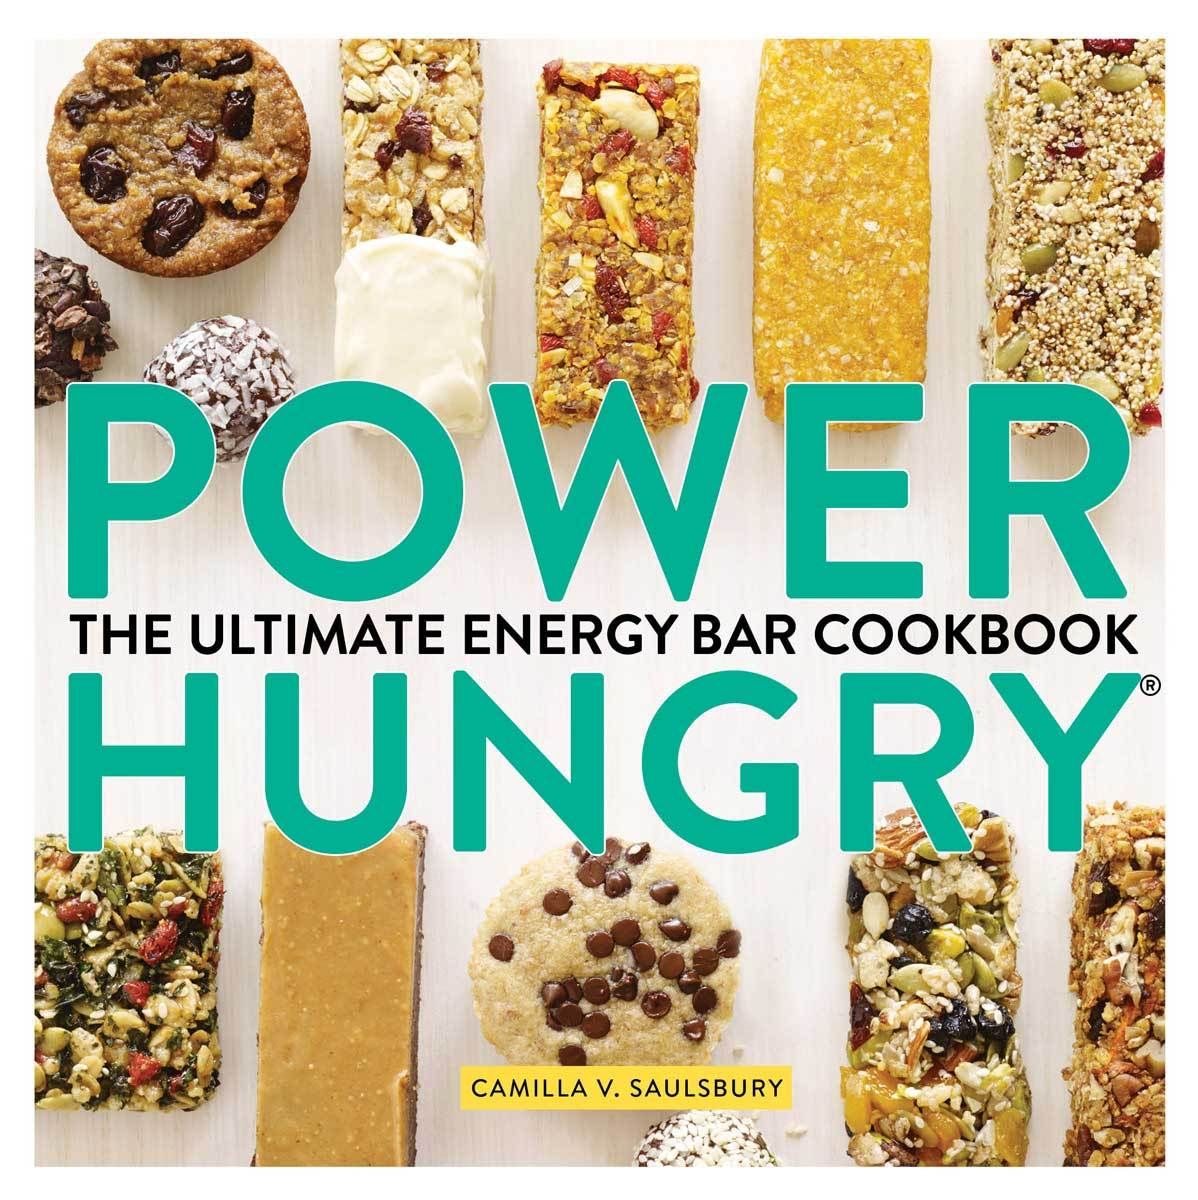 1powerhungry_cover_300dpi.jpg